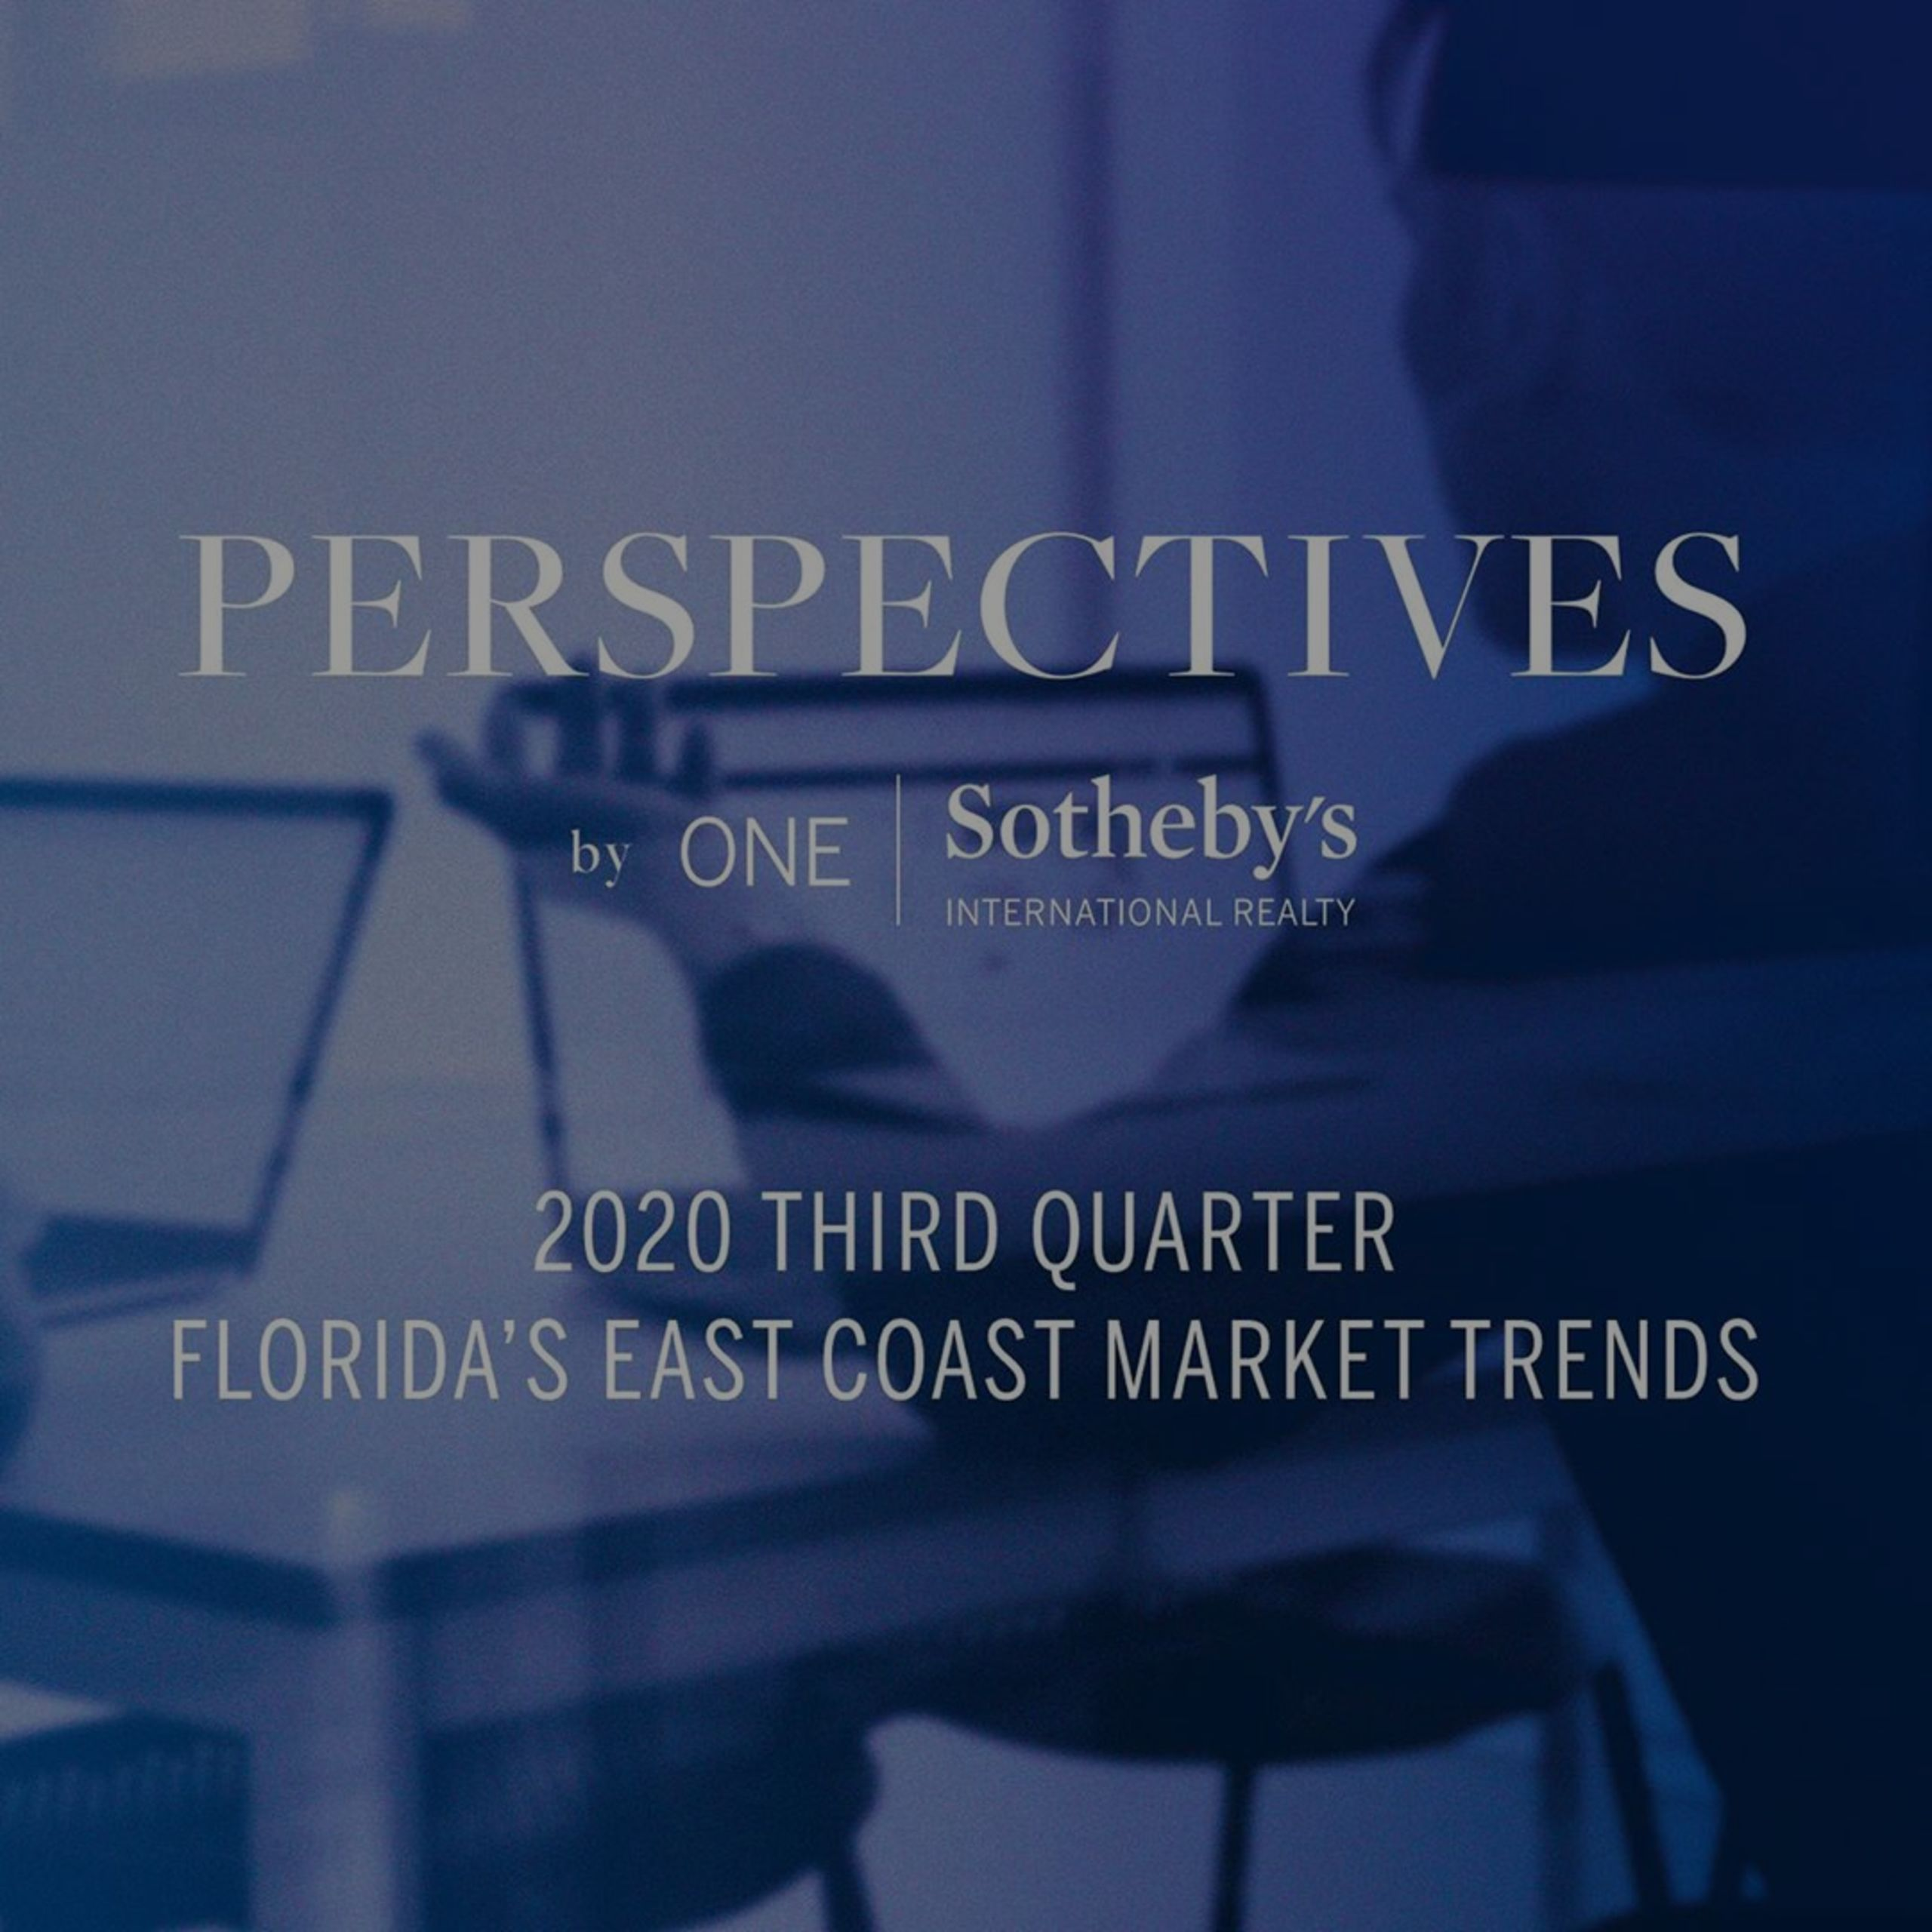 PERSPECTIVES – QUARTER 3 2020 MARKET STATISTICS REPORT